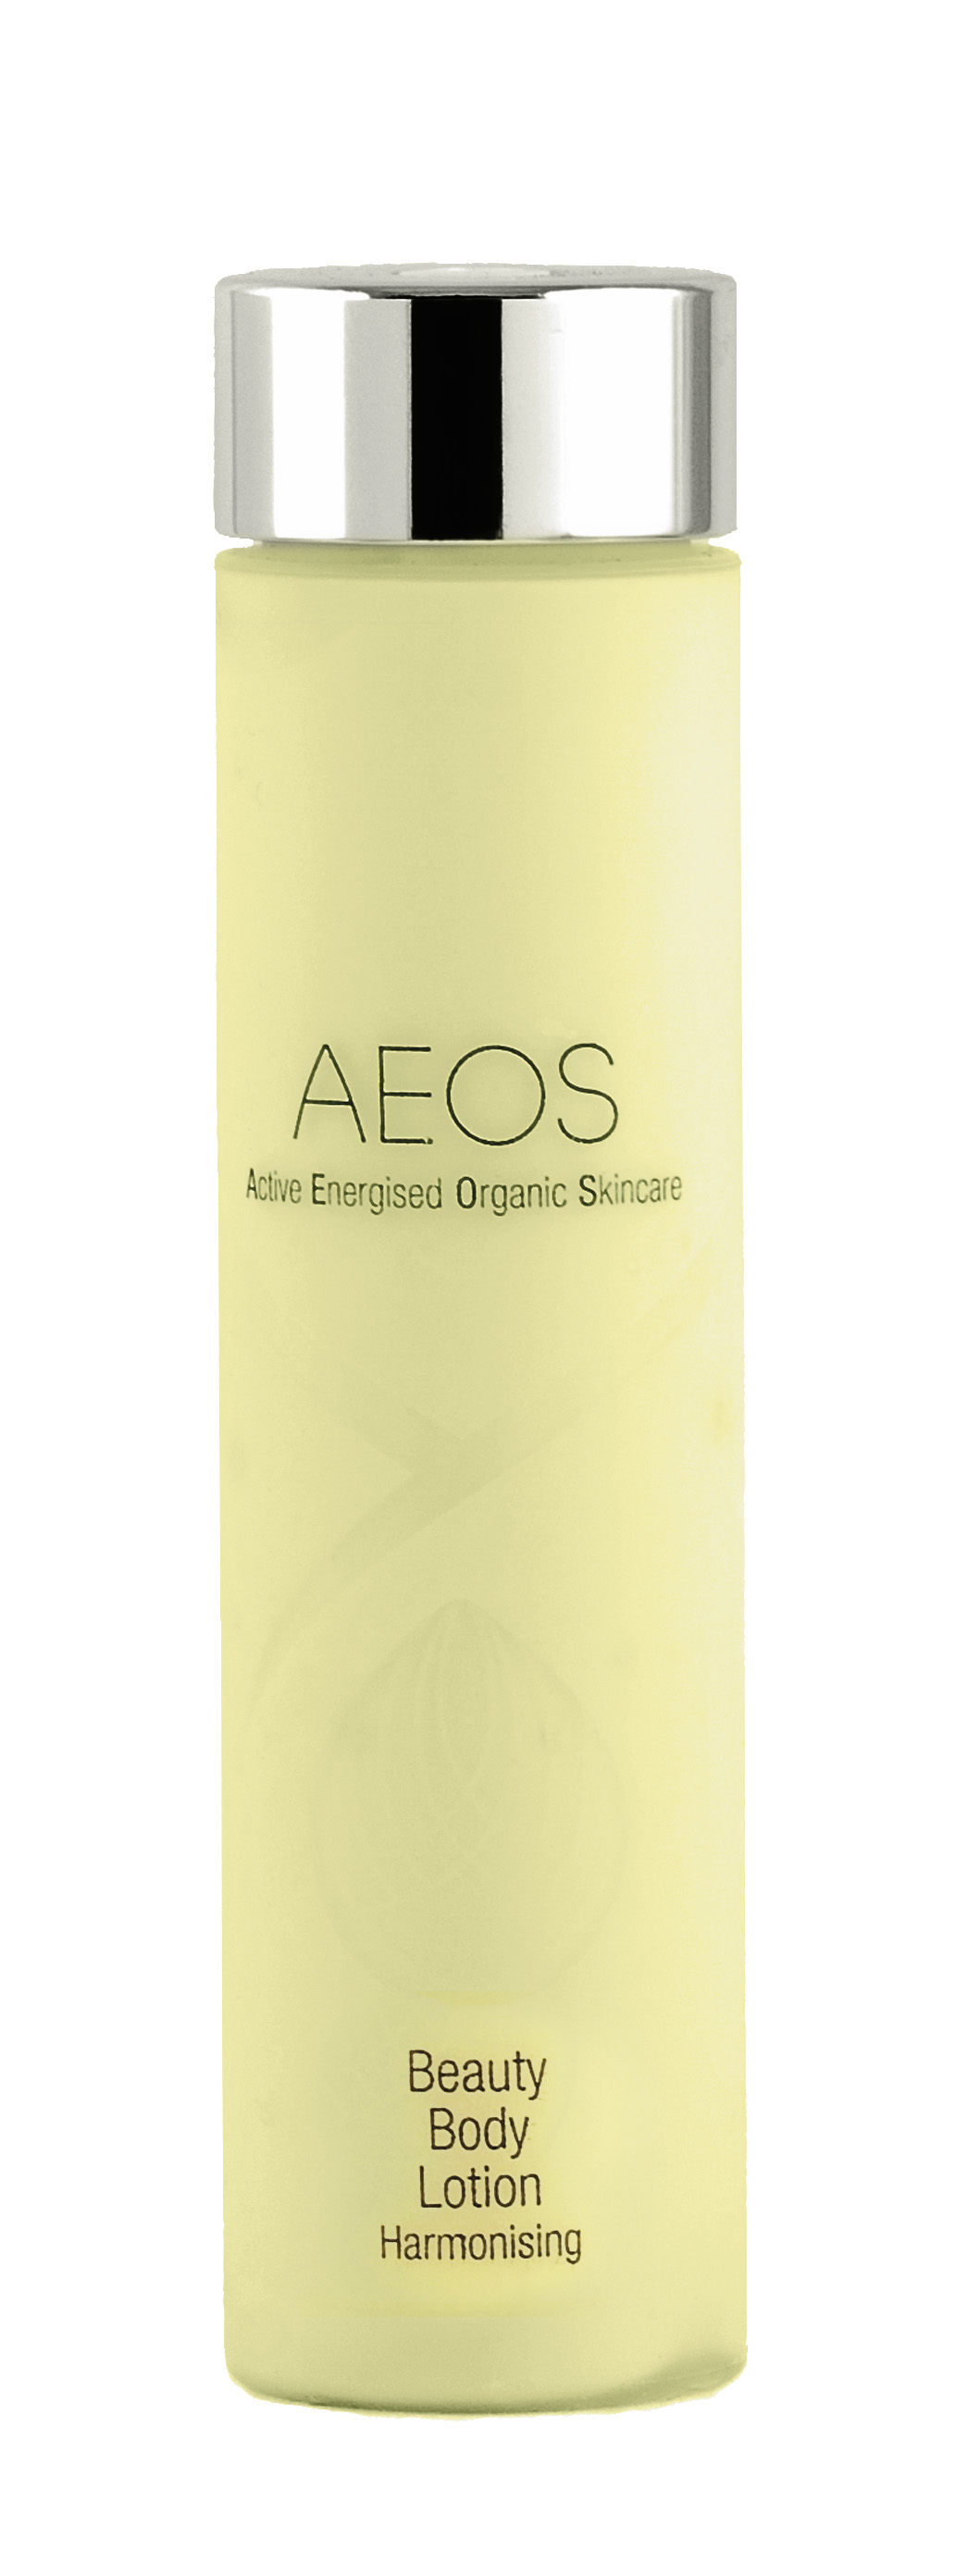 AEOS Beauty Body Lotion Harmonising